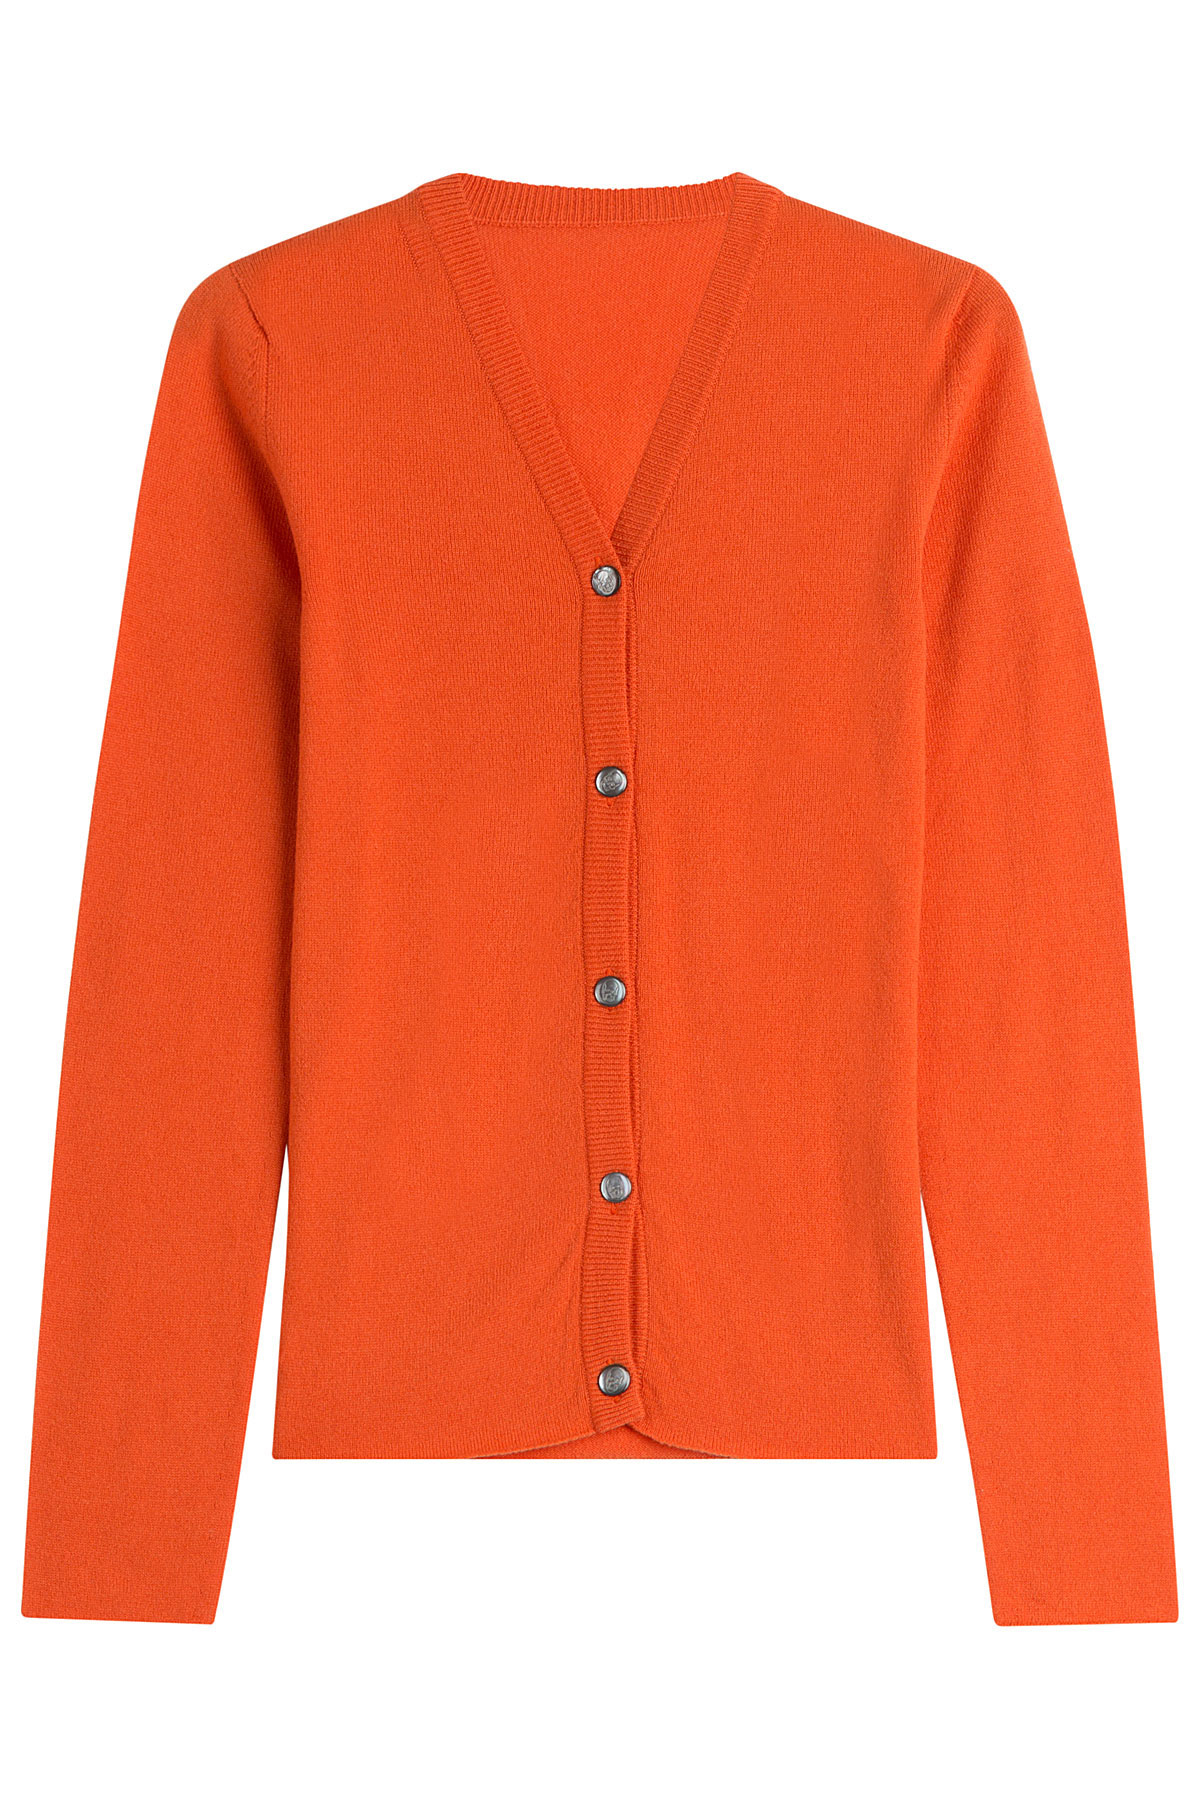 Shop for and buy orange cardigan online at Macy's. Find orange cardigan at Macy's.